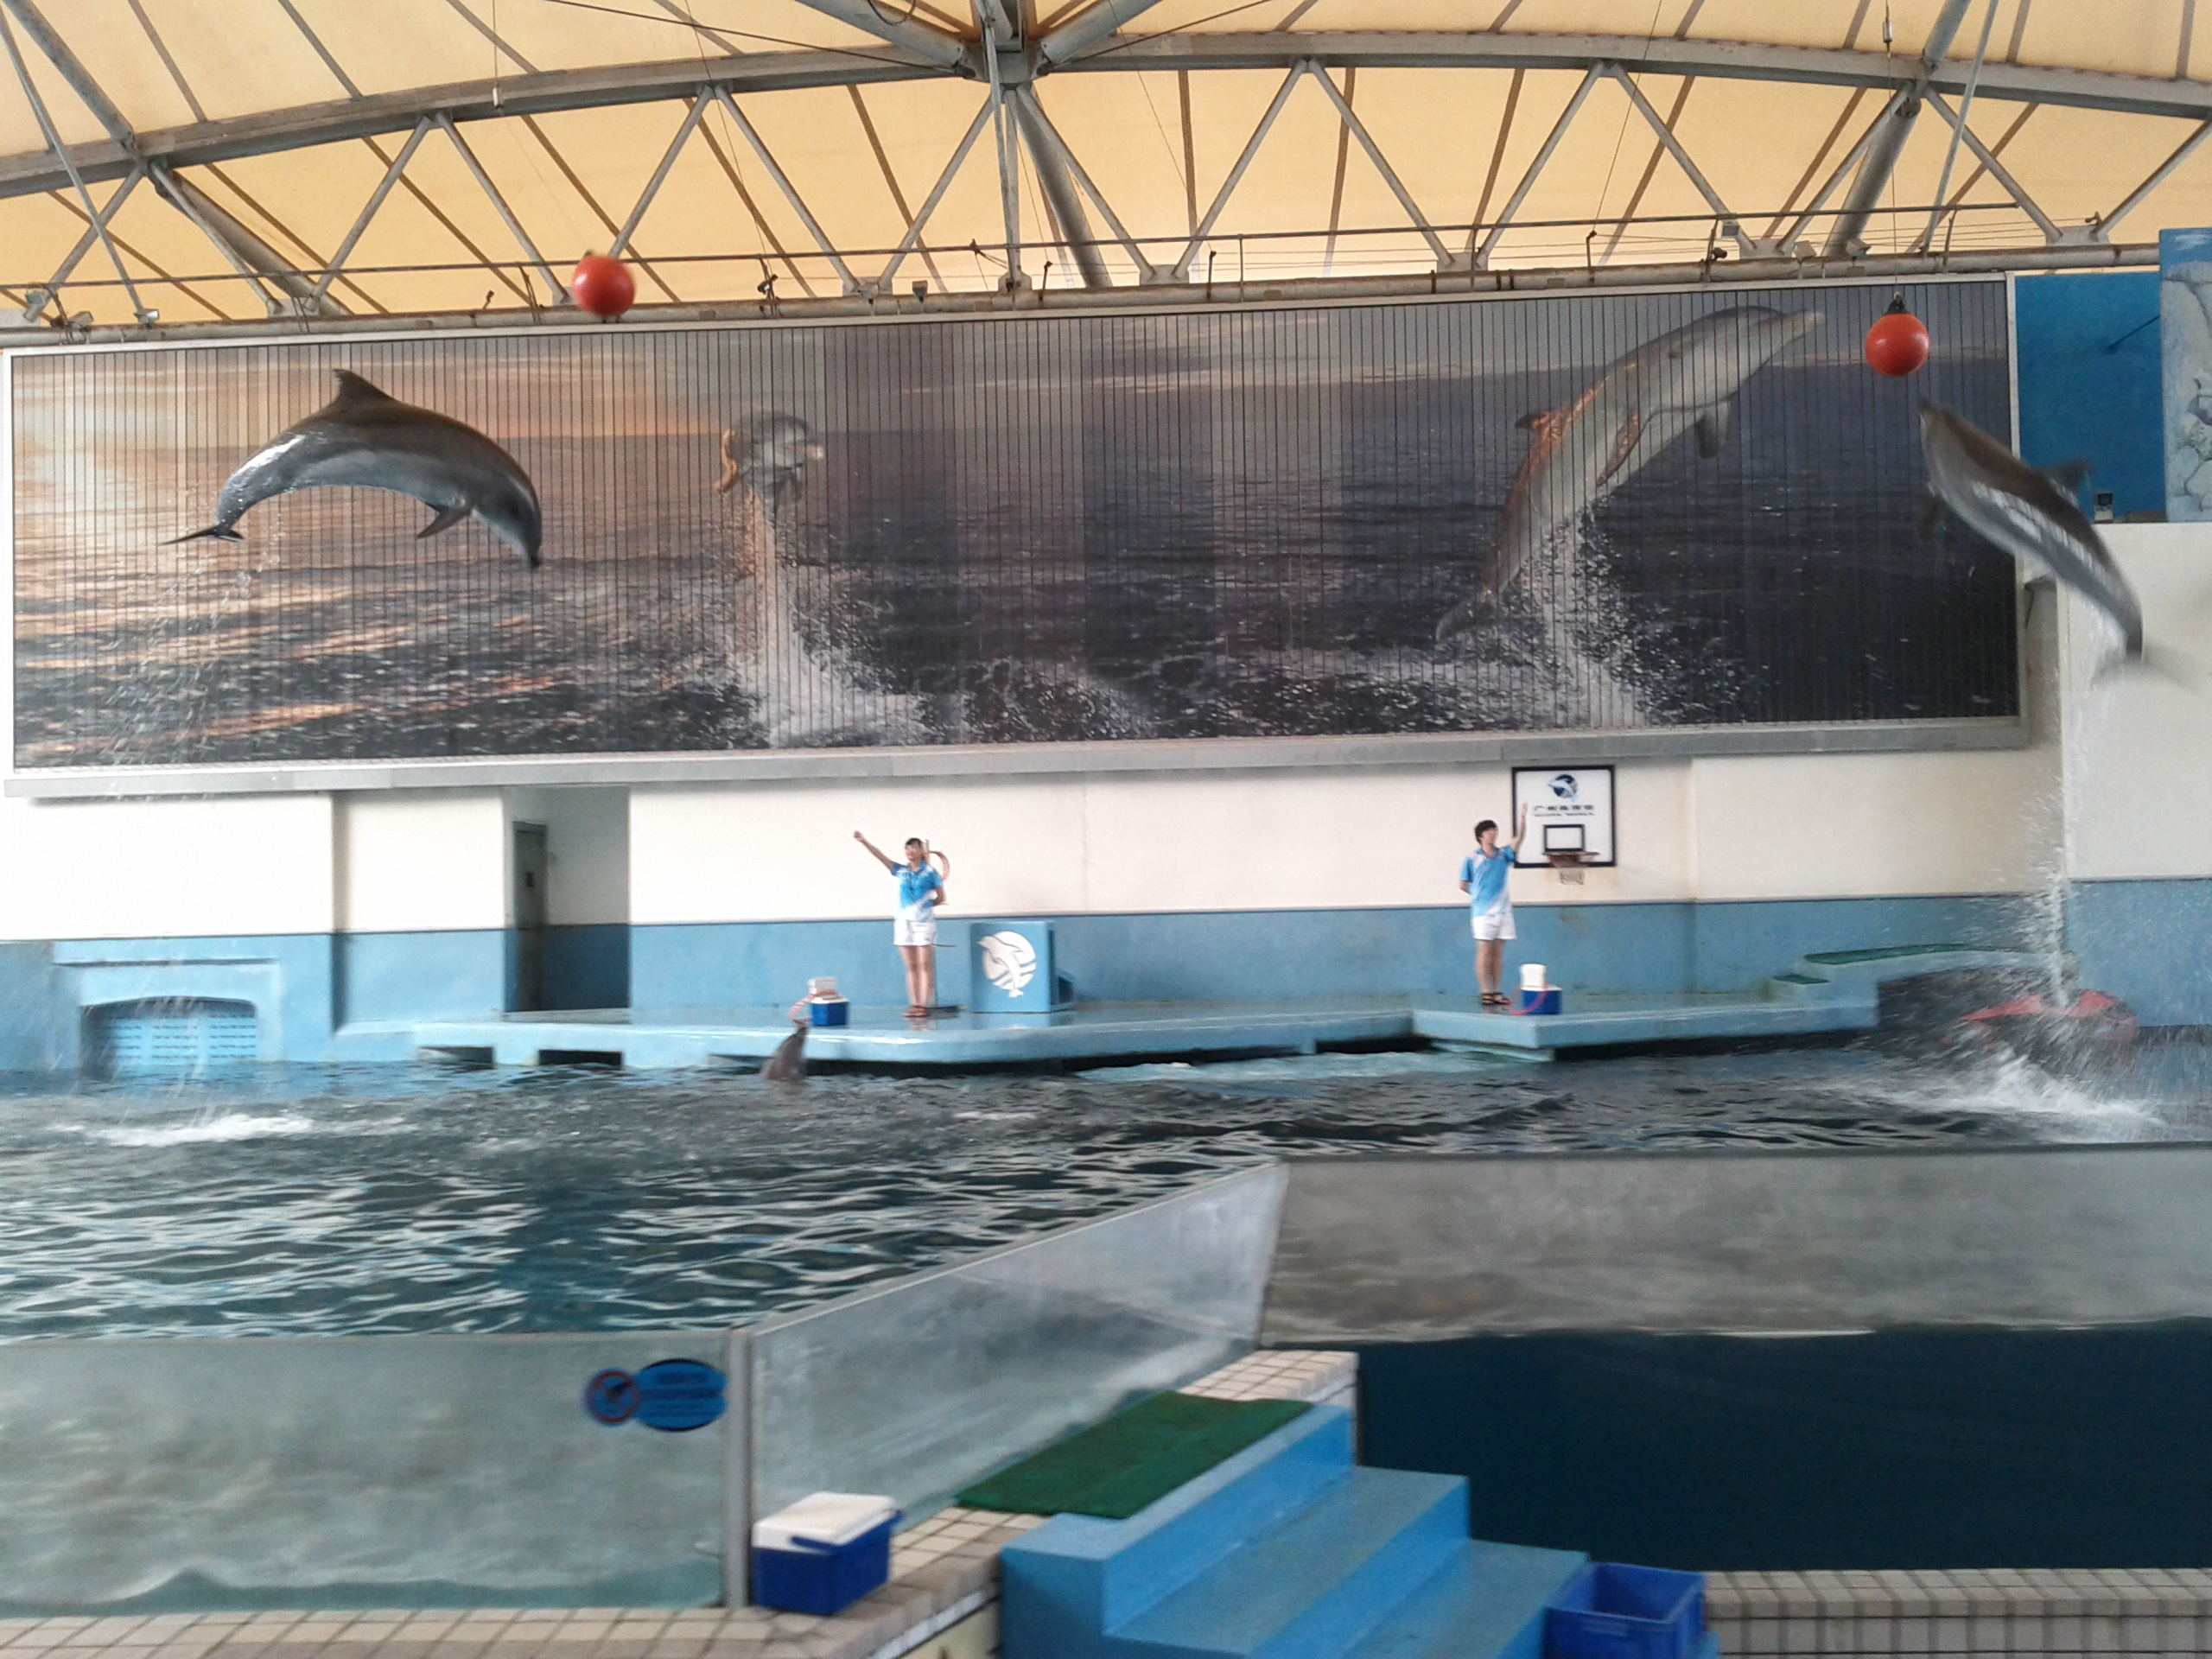 Dolphins jumping high at Guangzhou Zoo